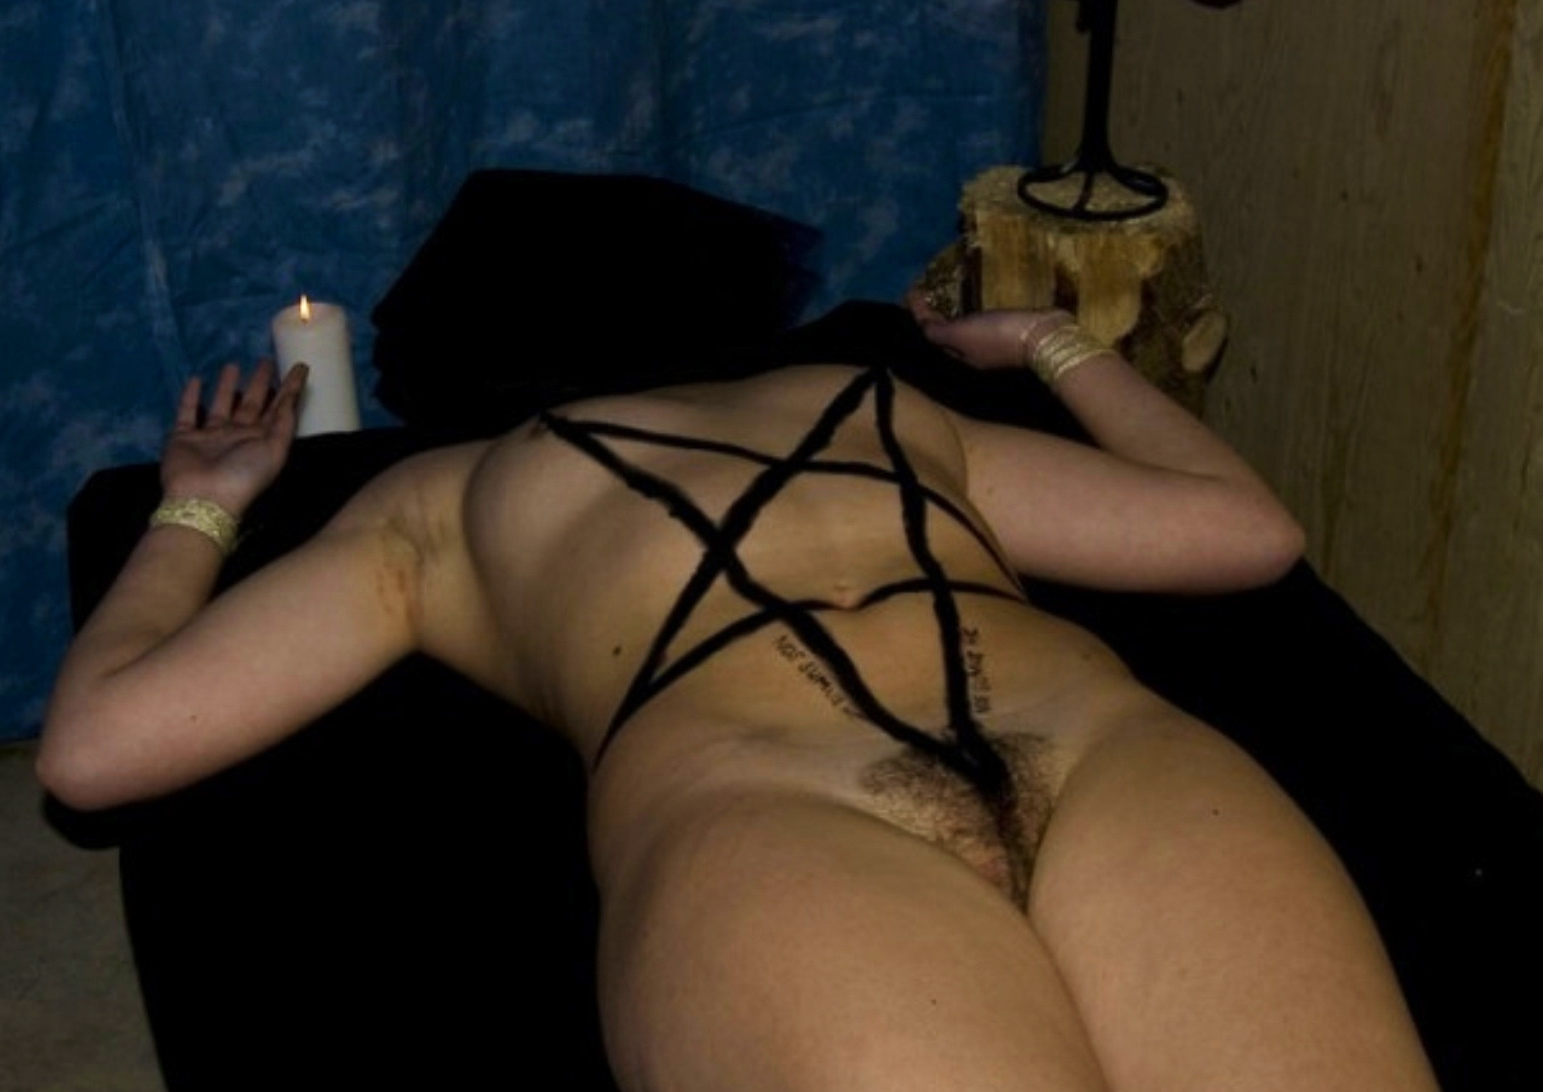 girls hot sexy pics ass satanic nude